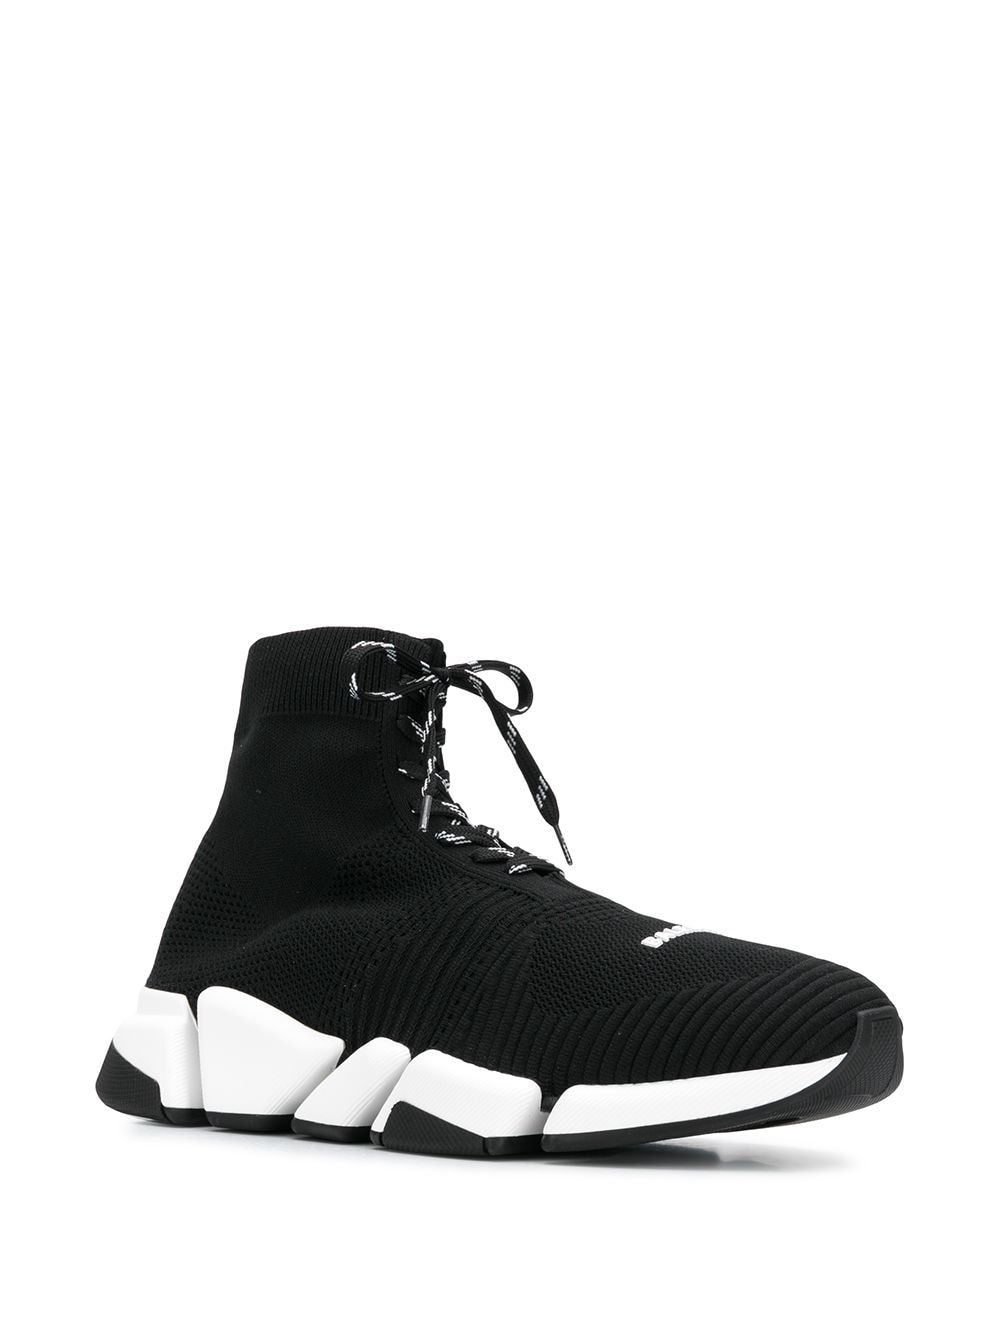 BALENCIAGA Speed 2.0 Lace-Up Sneaker Black/White